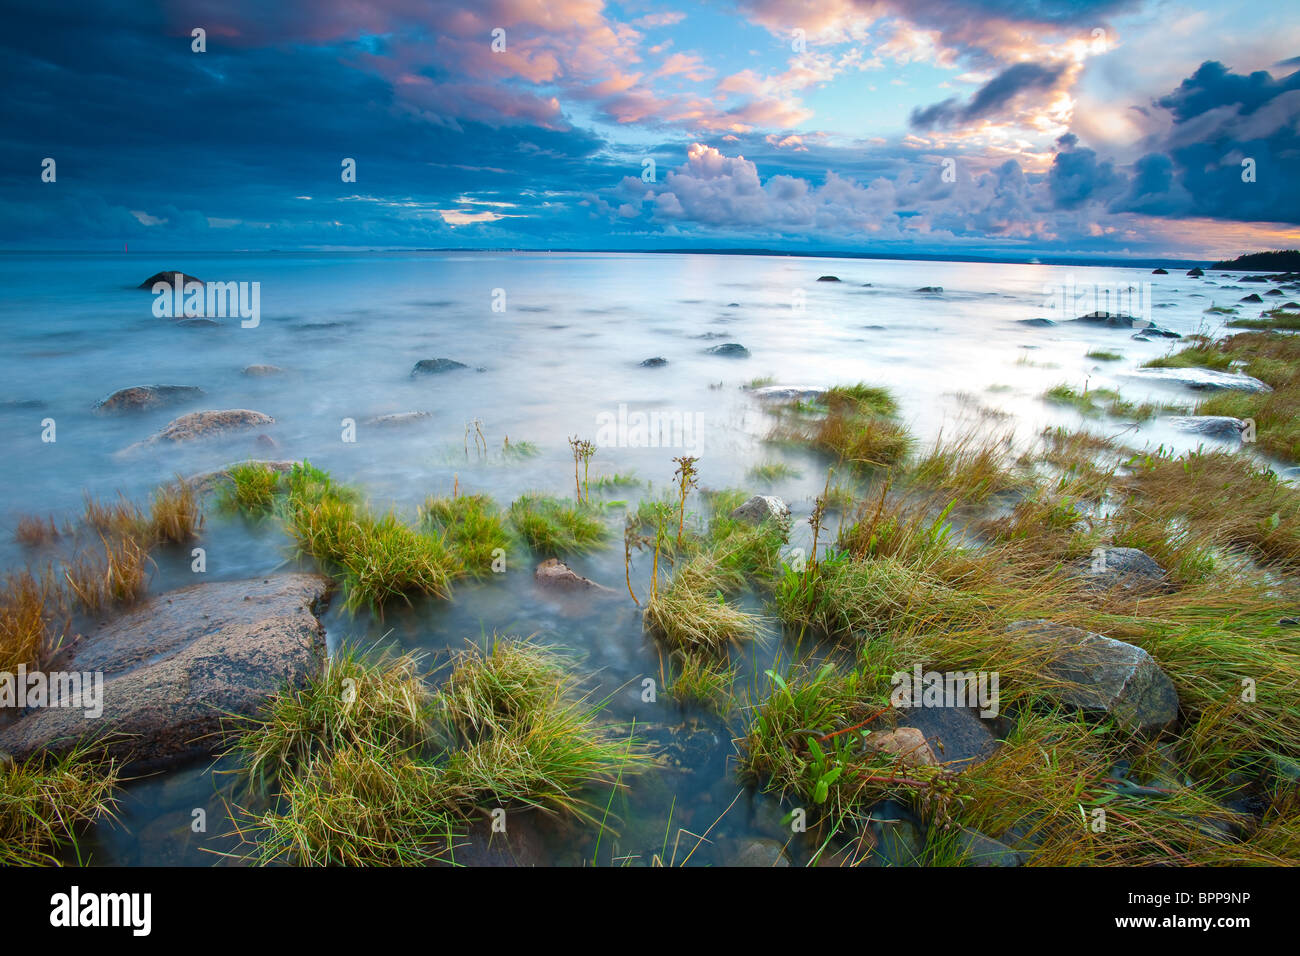 Beautiful evening at the south side of the island Jeløy in Moss kommune, Østfold fylke, Norway. - Stock Image